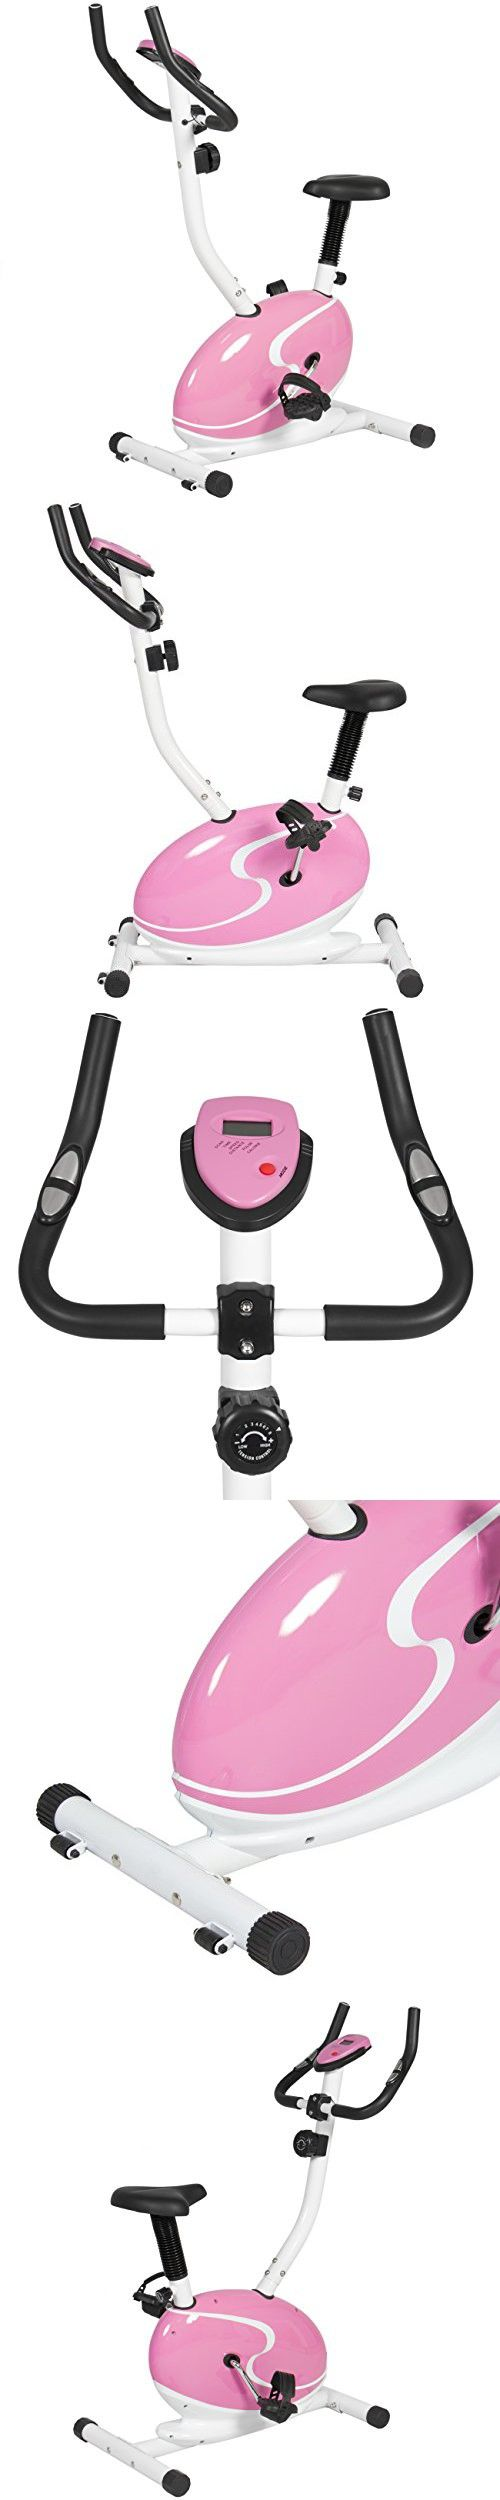 Stamina magnetic upright 5325 exercise bike - Best Choice Products Pink Magnetic Upright Exercise Bike Fitness Cycling Bicycle Cardio Workout